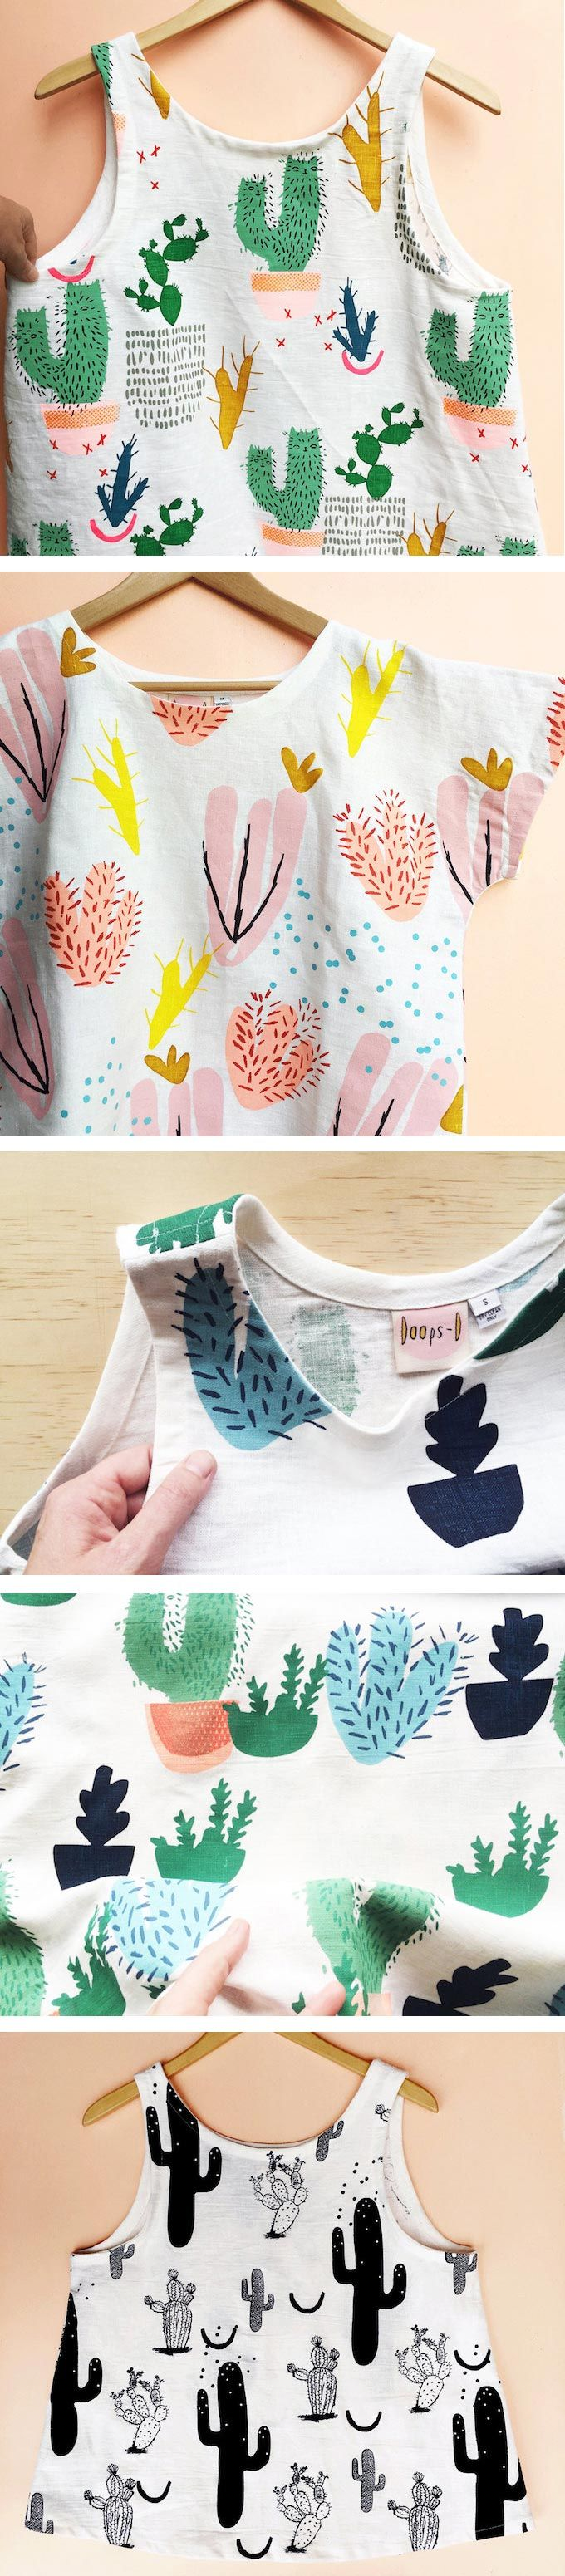 Doops Designhas created a series of colorful cacti patterns on tank tops and t-shirts which are perfect for the warmer months.